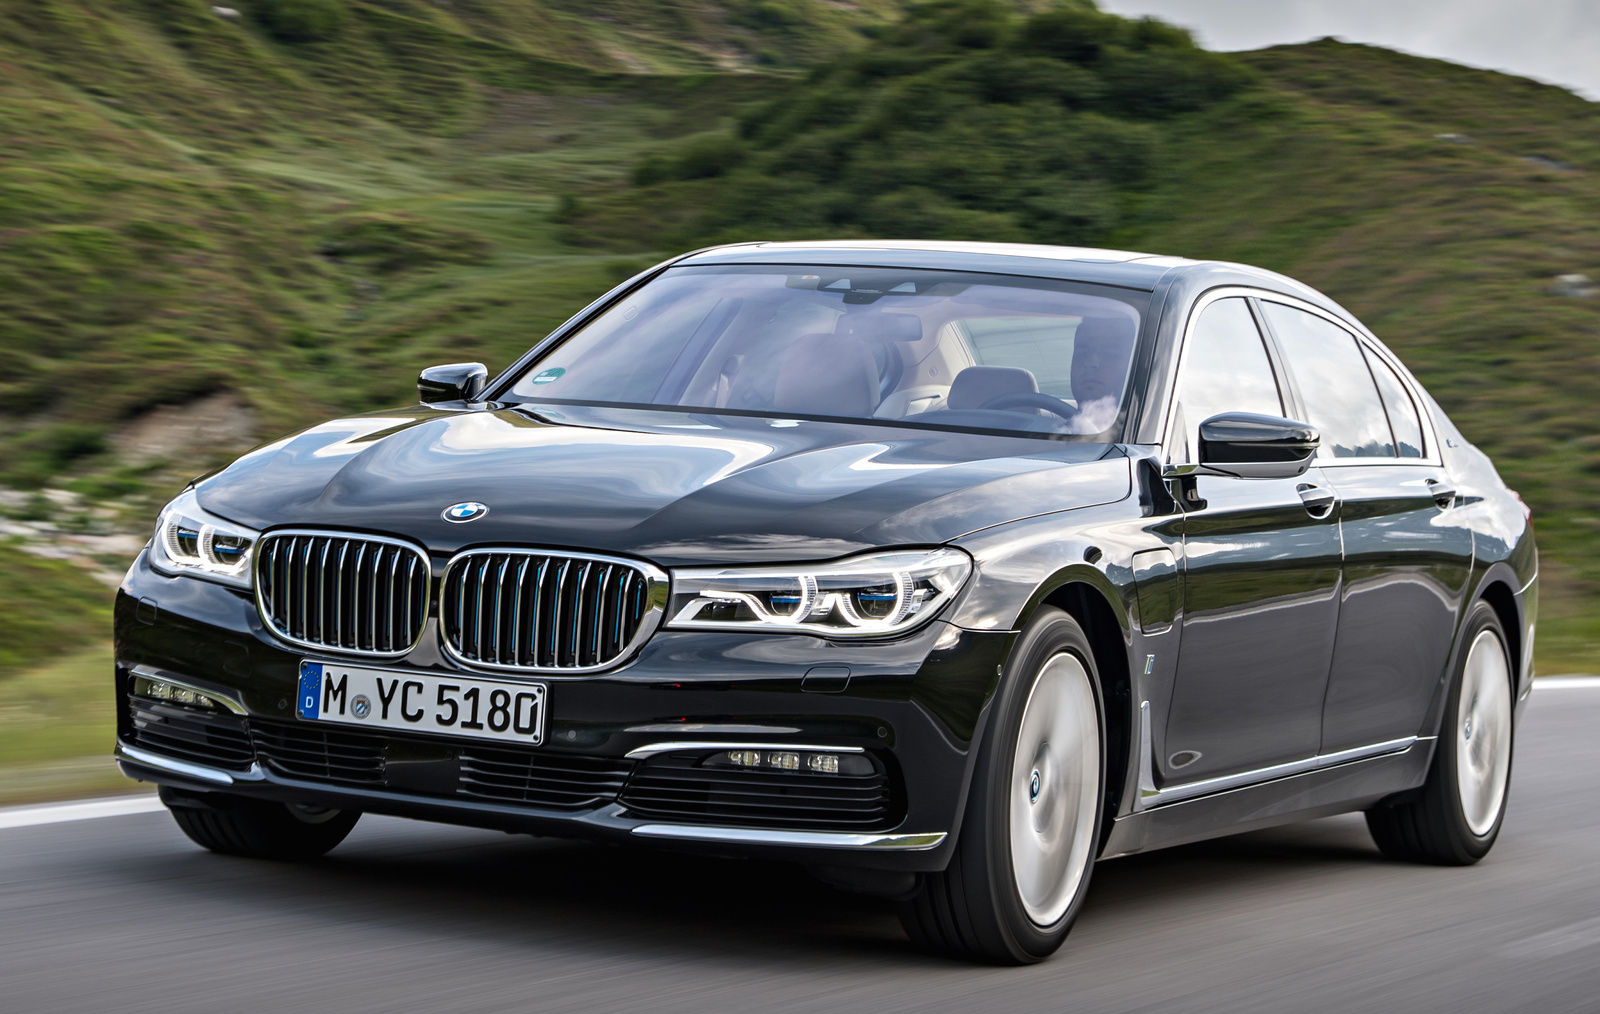 2017 BMW 7 Series Front Quarter View Exterior Manufacturer Gallery Worthy